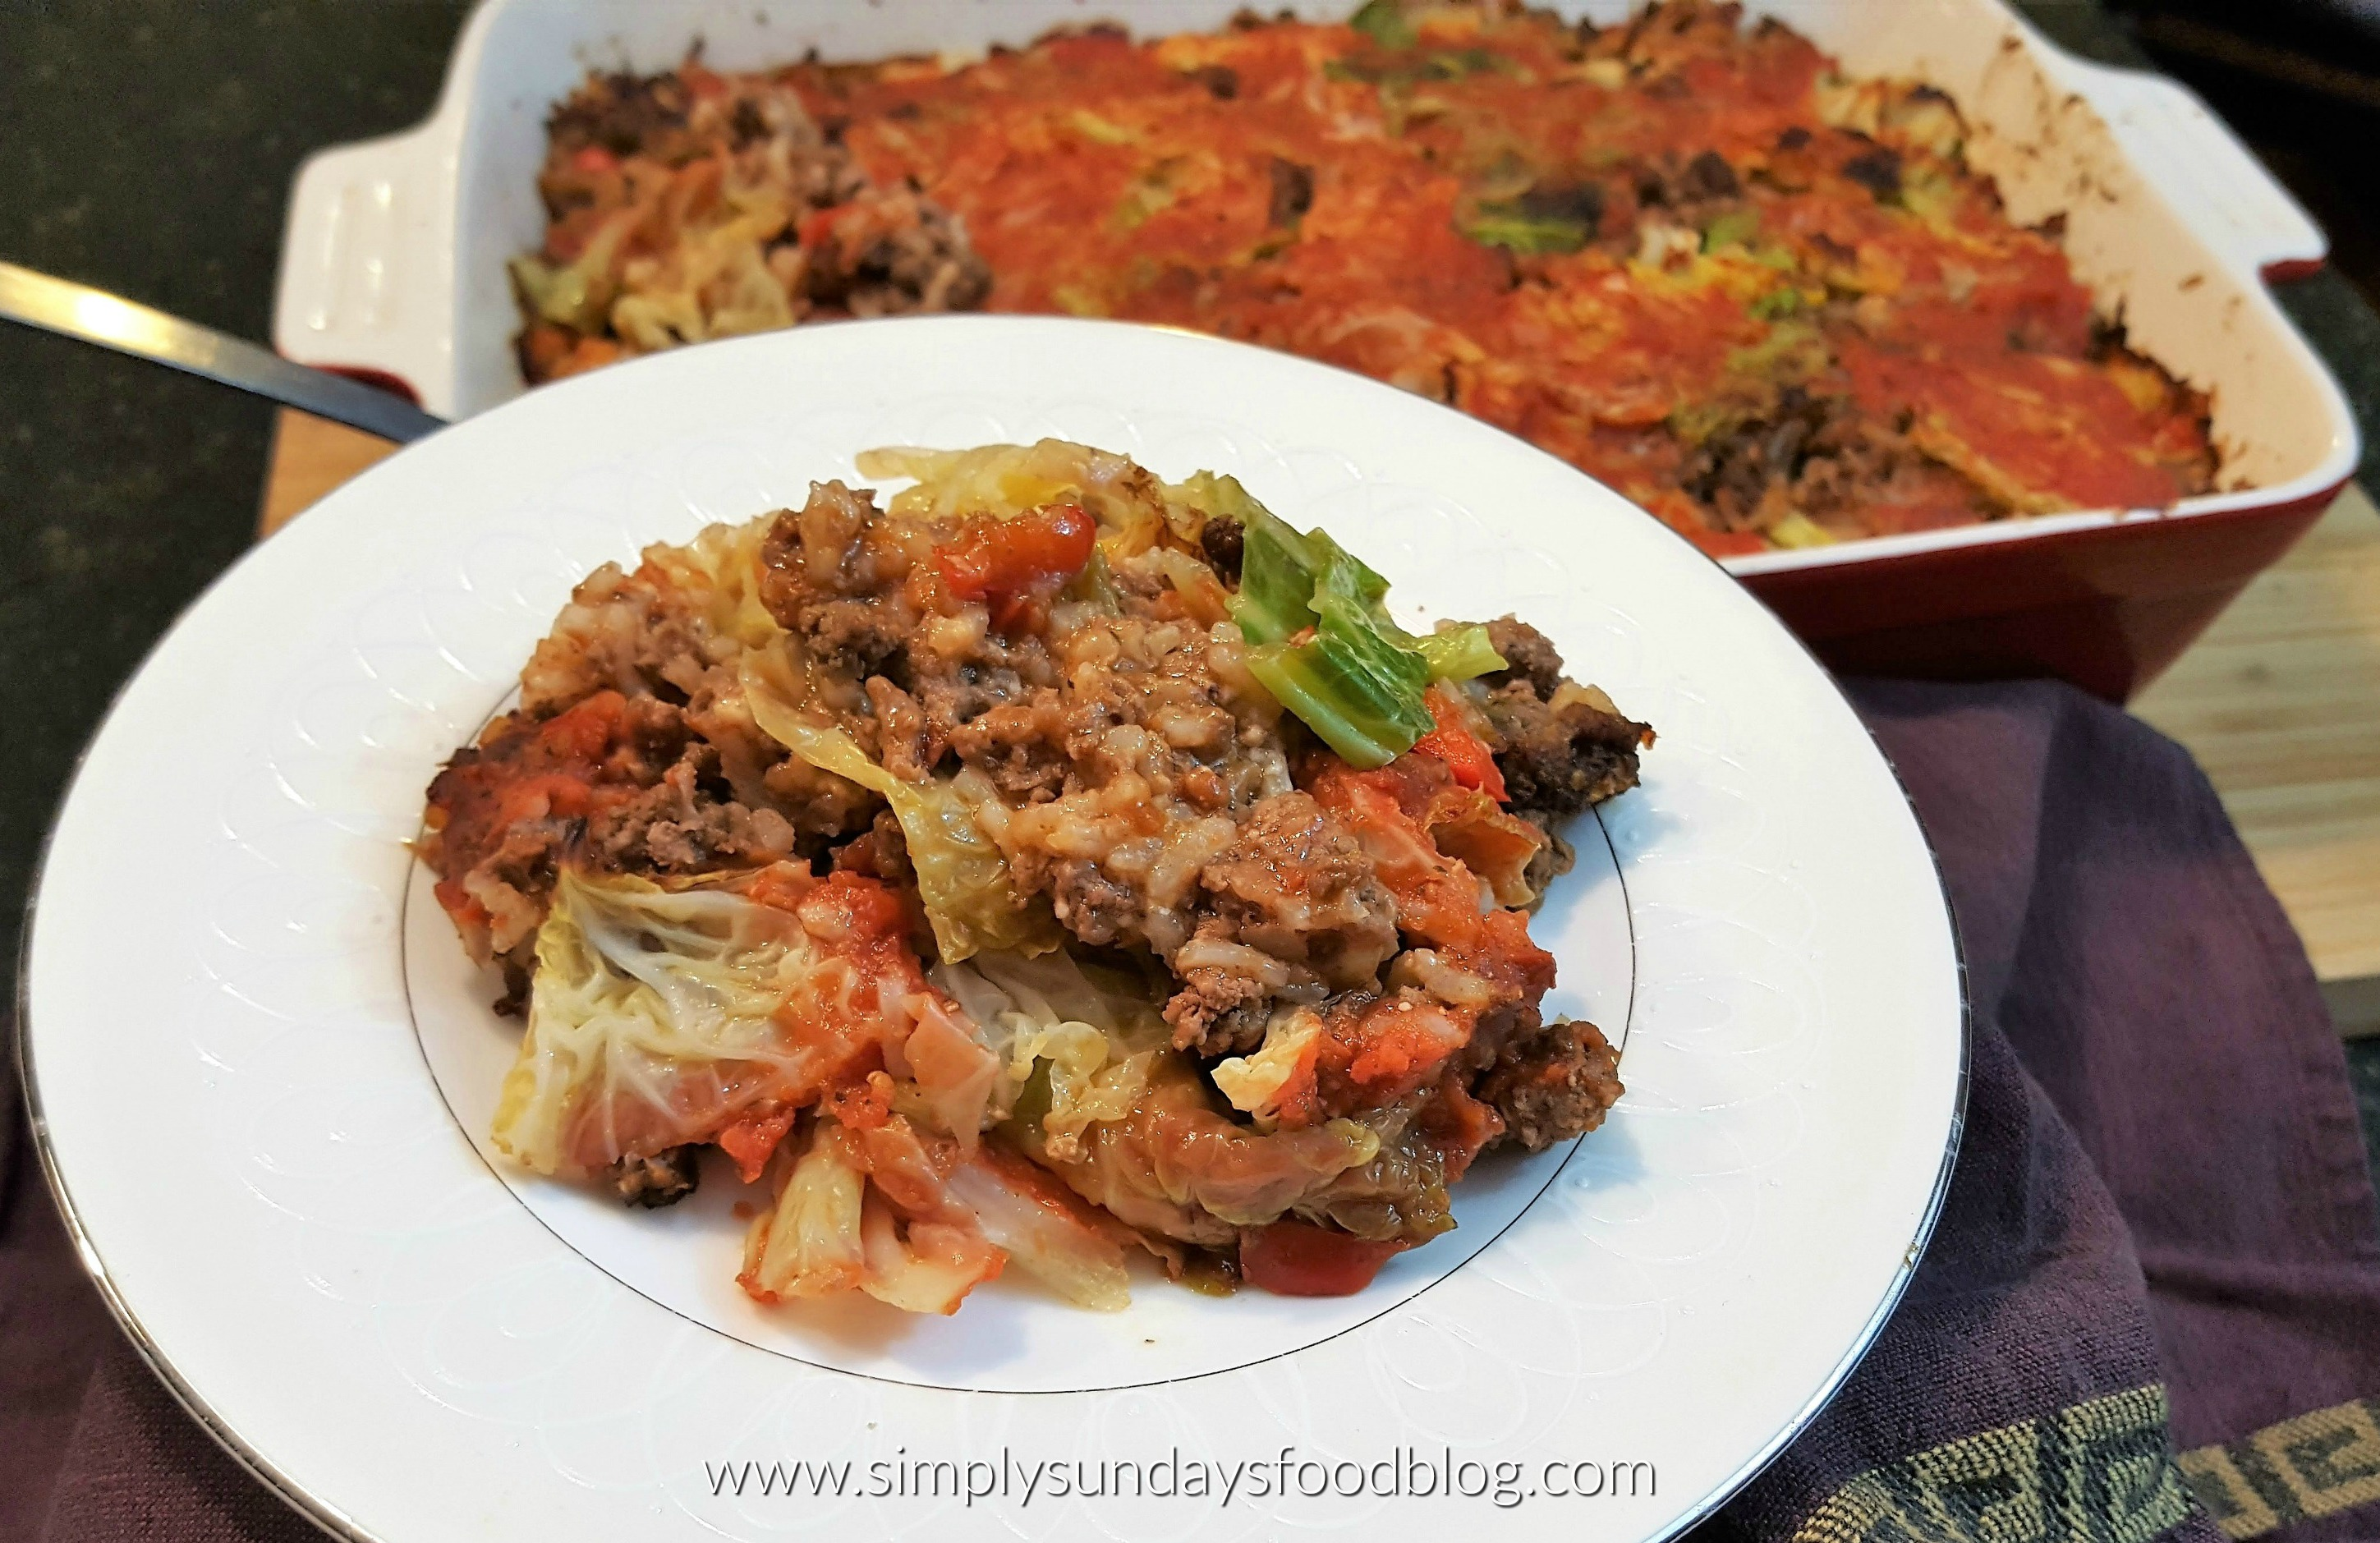 A plate of stuffed cabbage casserole on a white plate with the casserole dish in the background